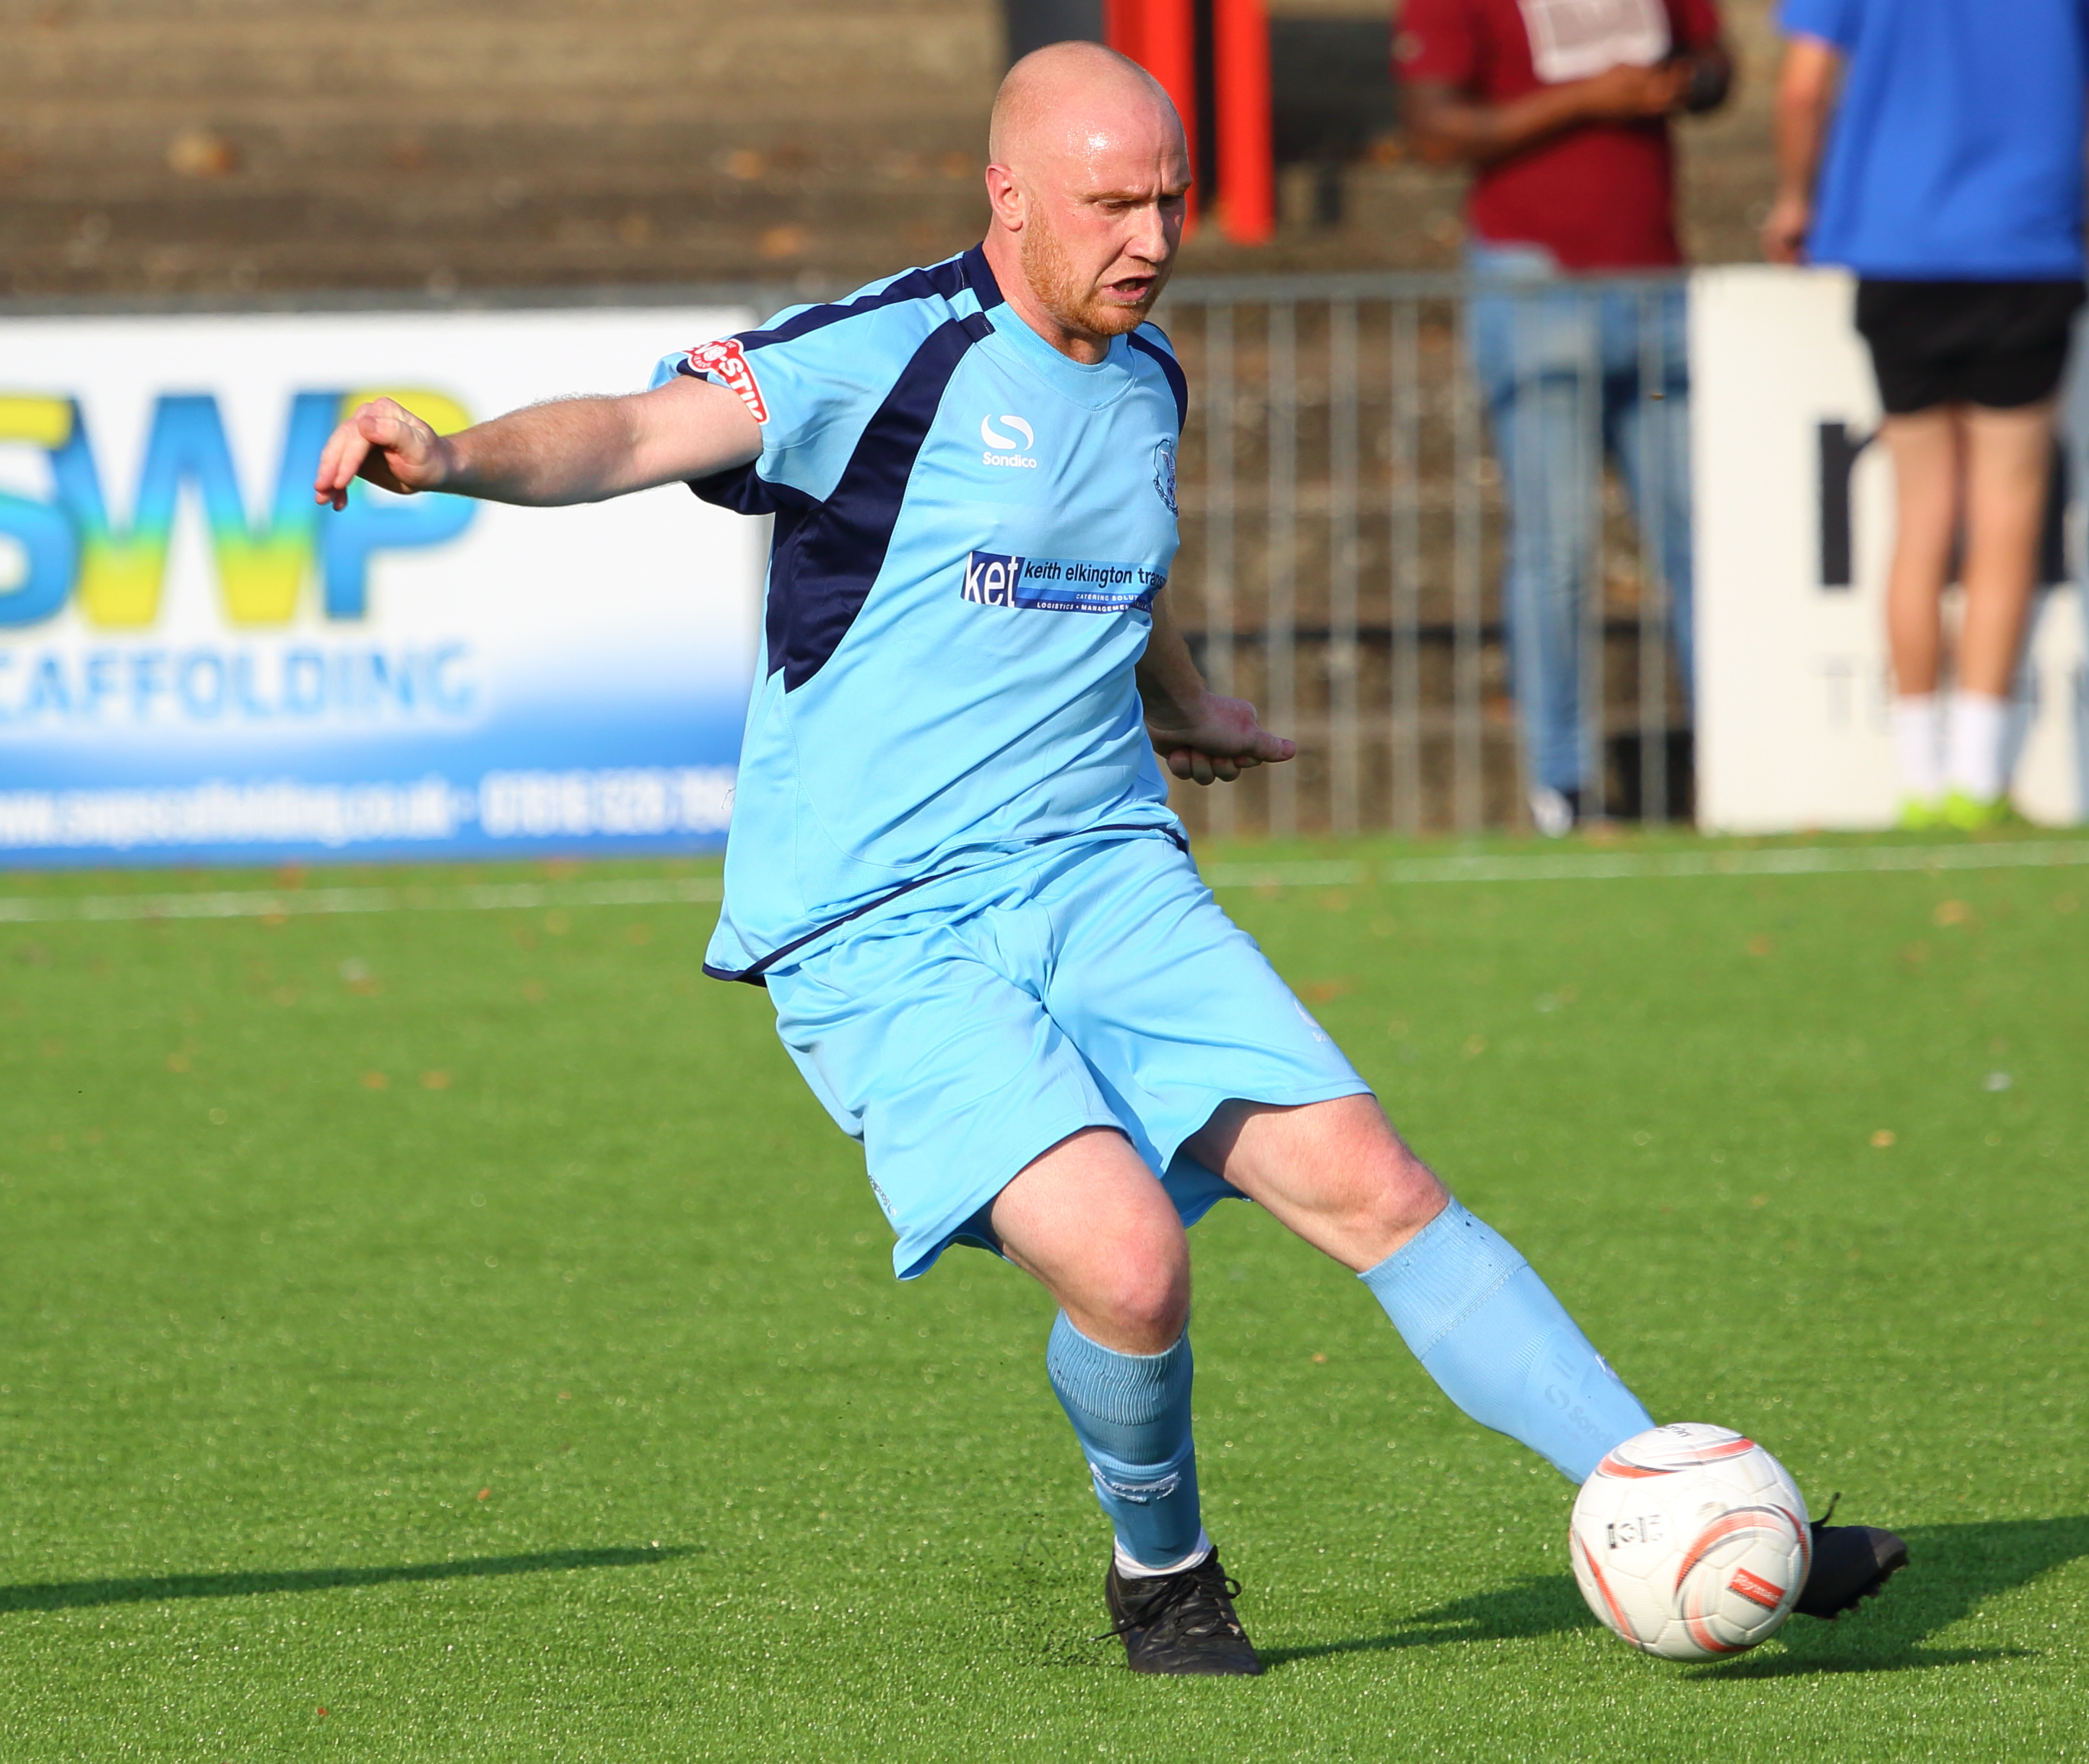 Alex Woodfine. Carshalton v Leighton FA Trophy 2015